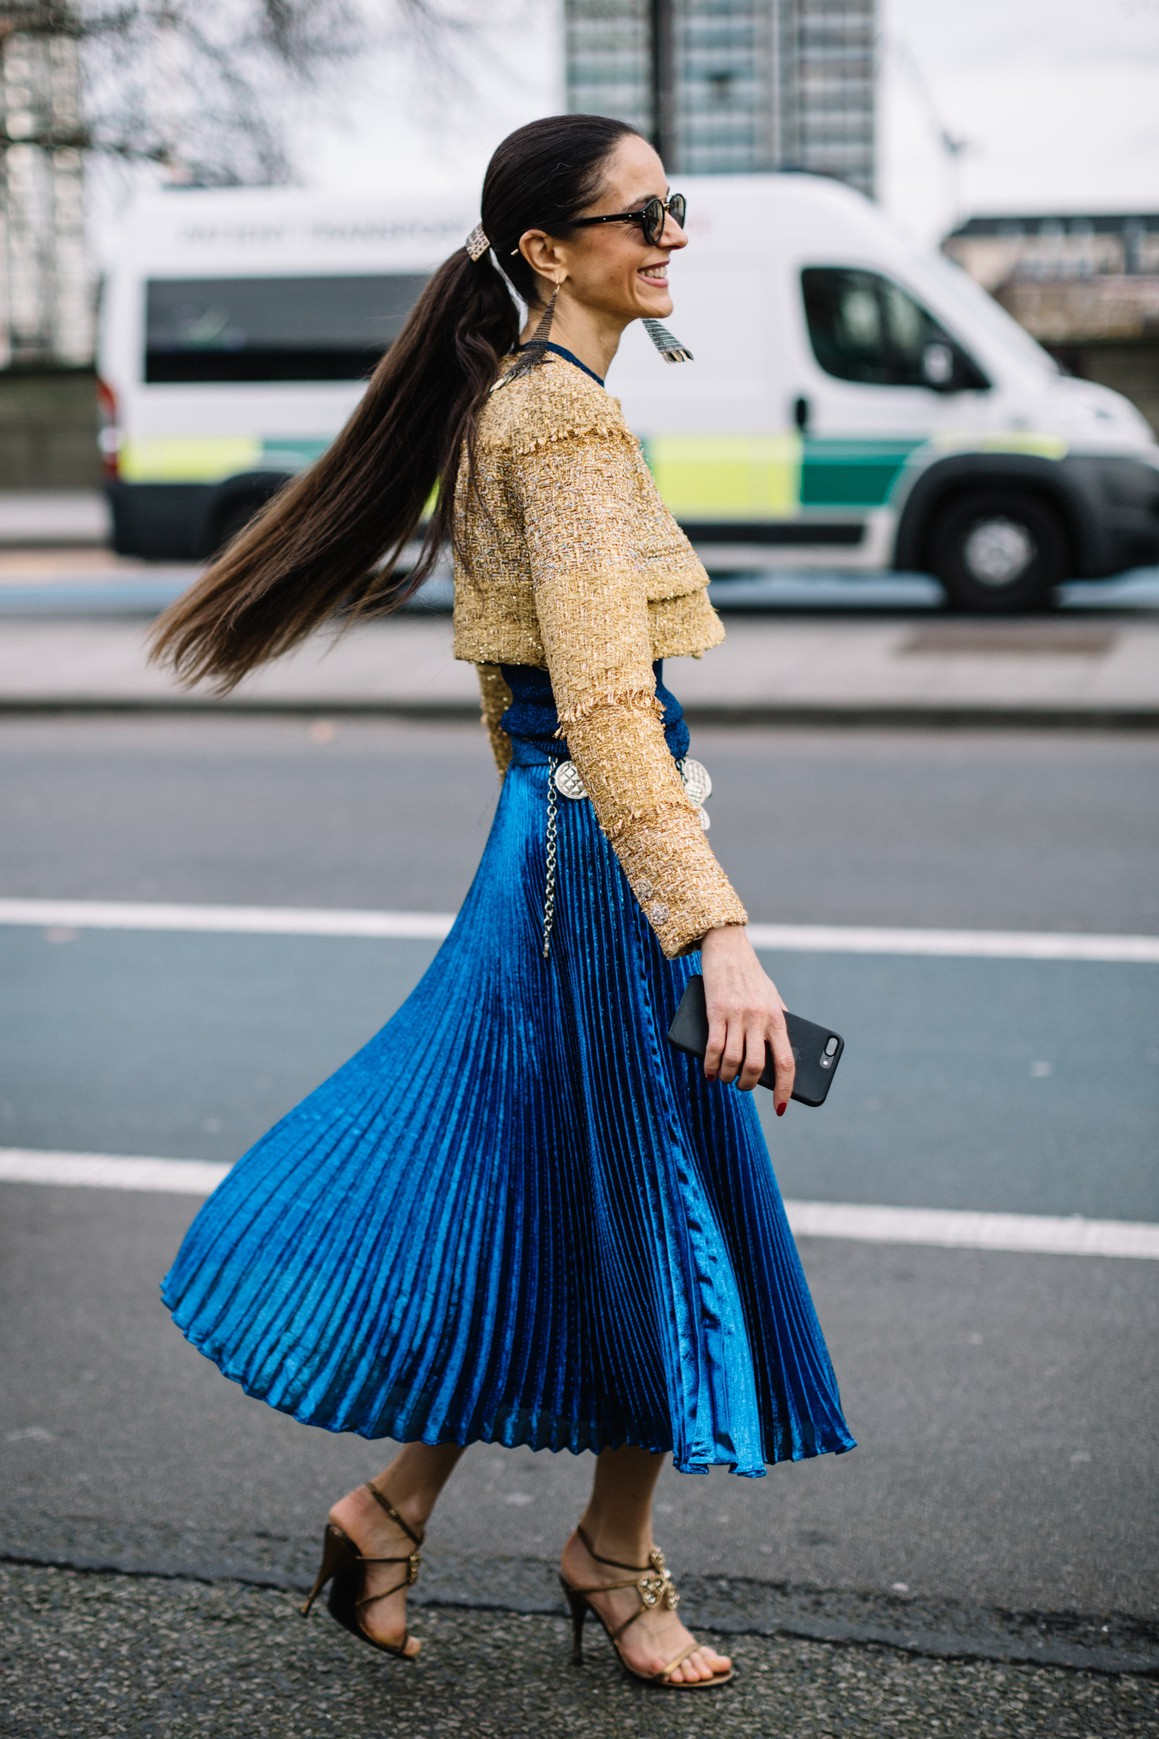 Womens Fashion Bestsellers In 2017 Thread By Zalora Singapore Fiction Peplum Dress Purple From Peplums To Shift Dresses Heres A List Of The Top Staple Pieces That Were Everyones Closets Earlier This Year